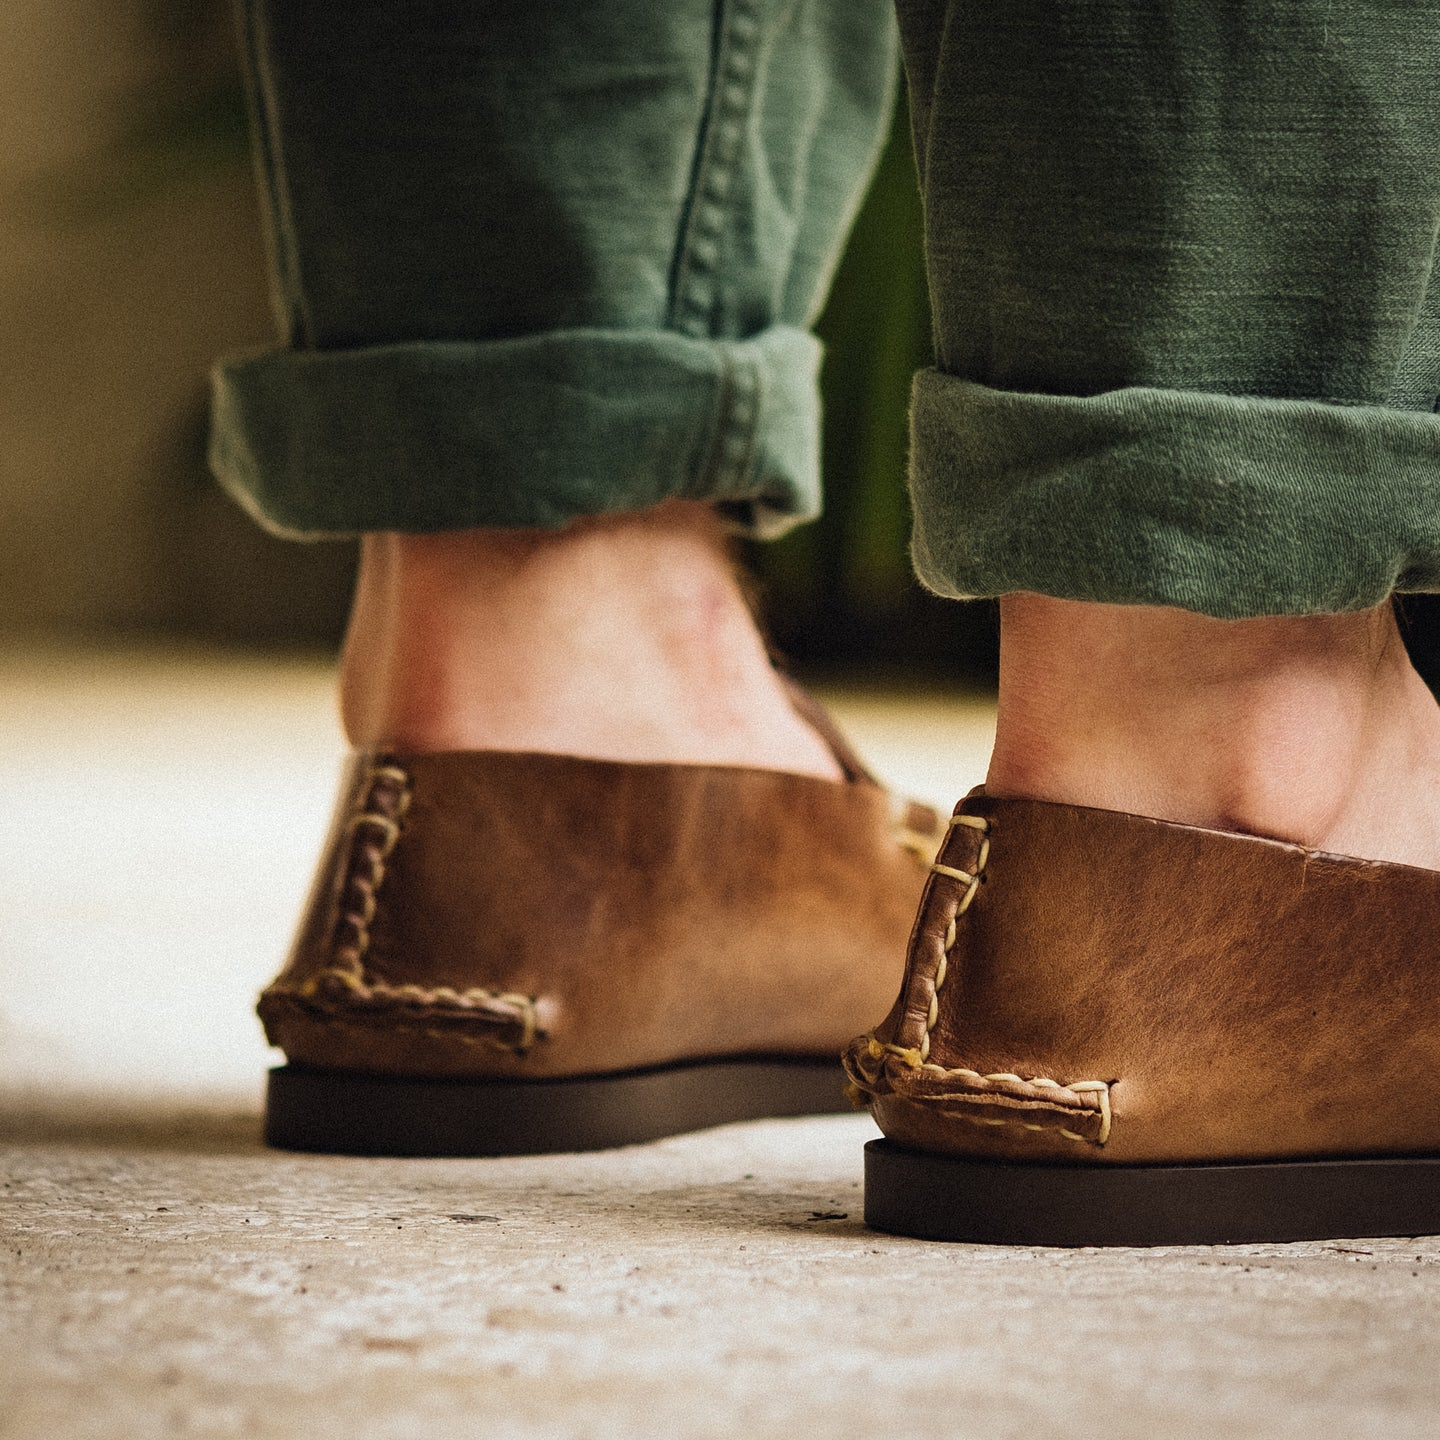 Slip Moc - Natural 12oz Chromexcel, Camp Sole - Made in USA